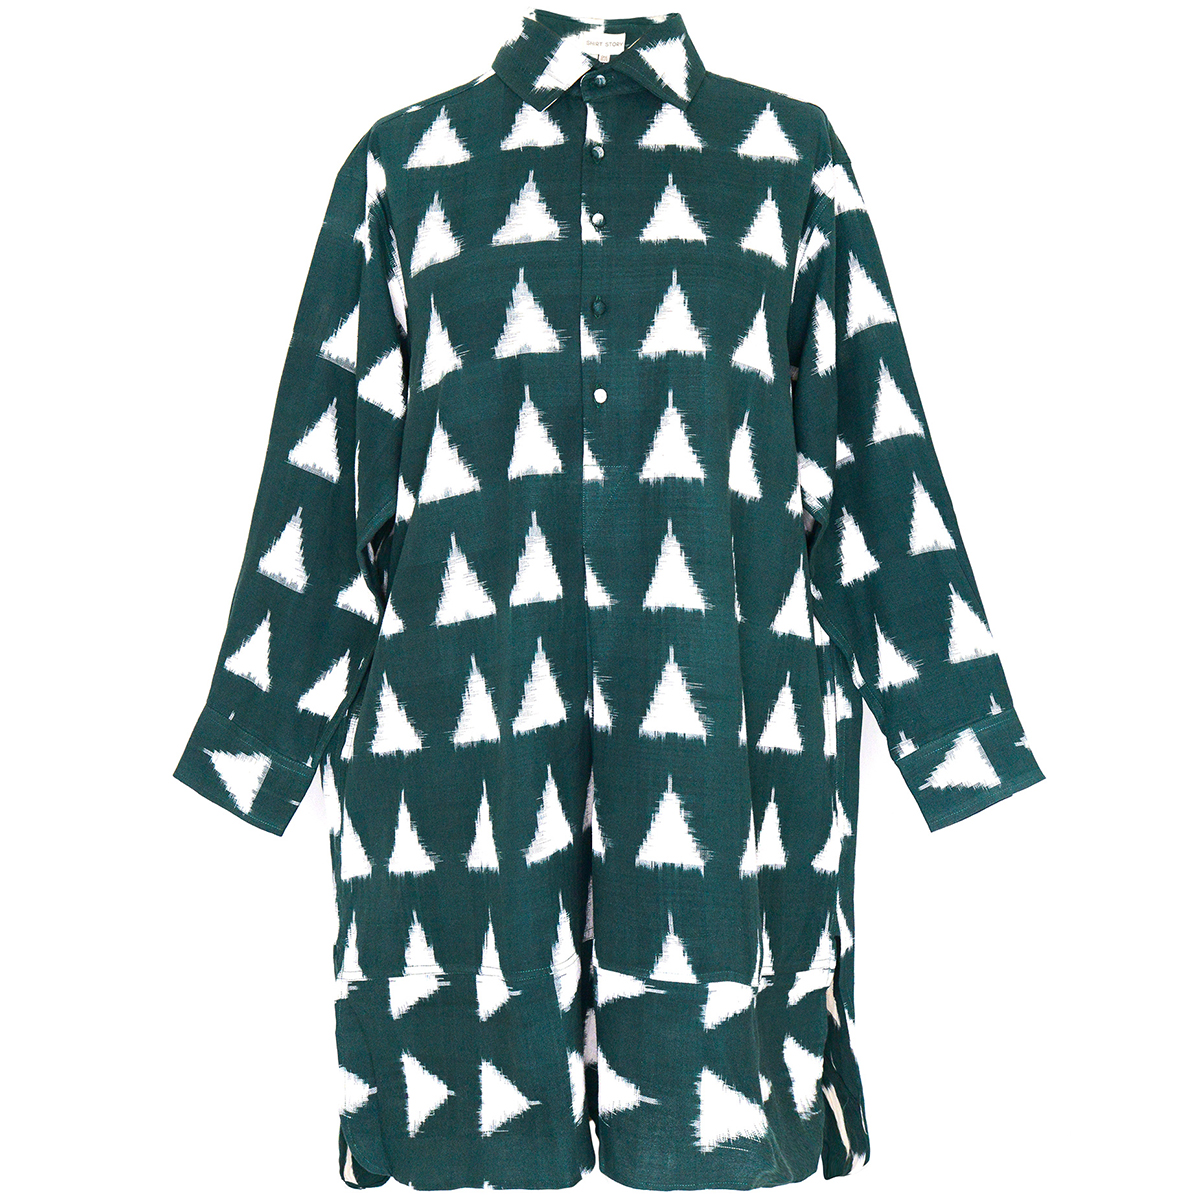 Teal Ikat shirt